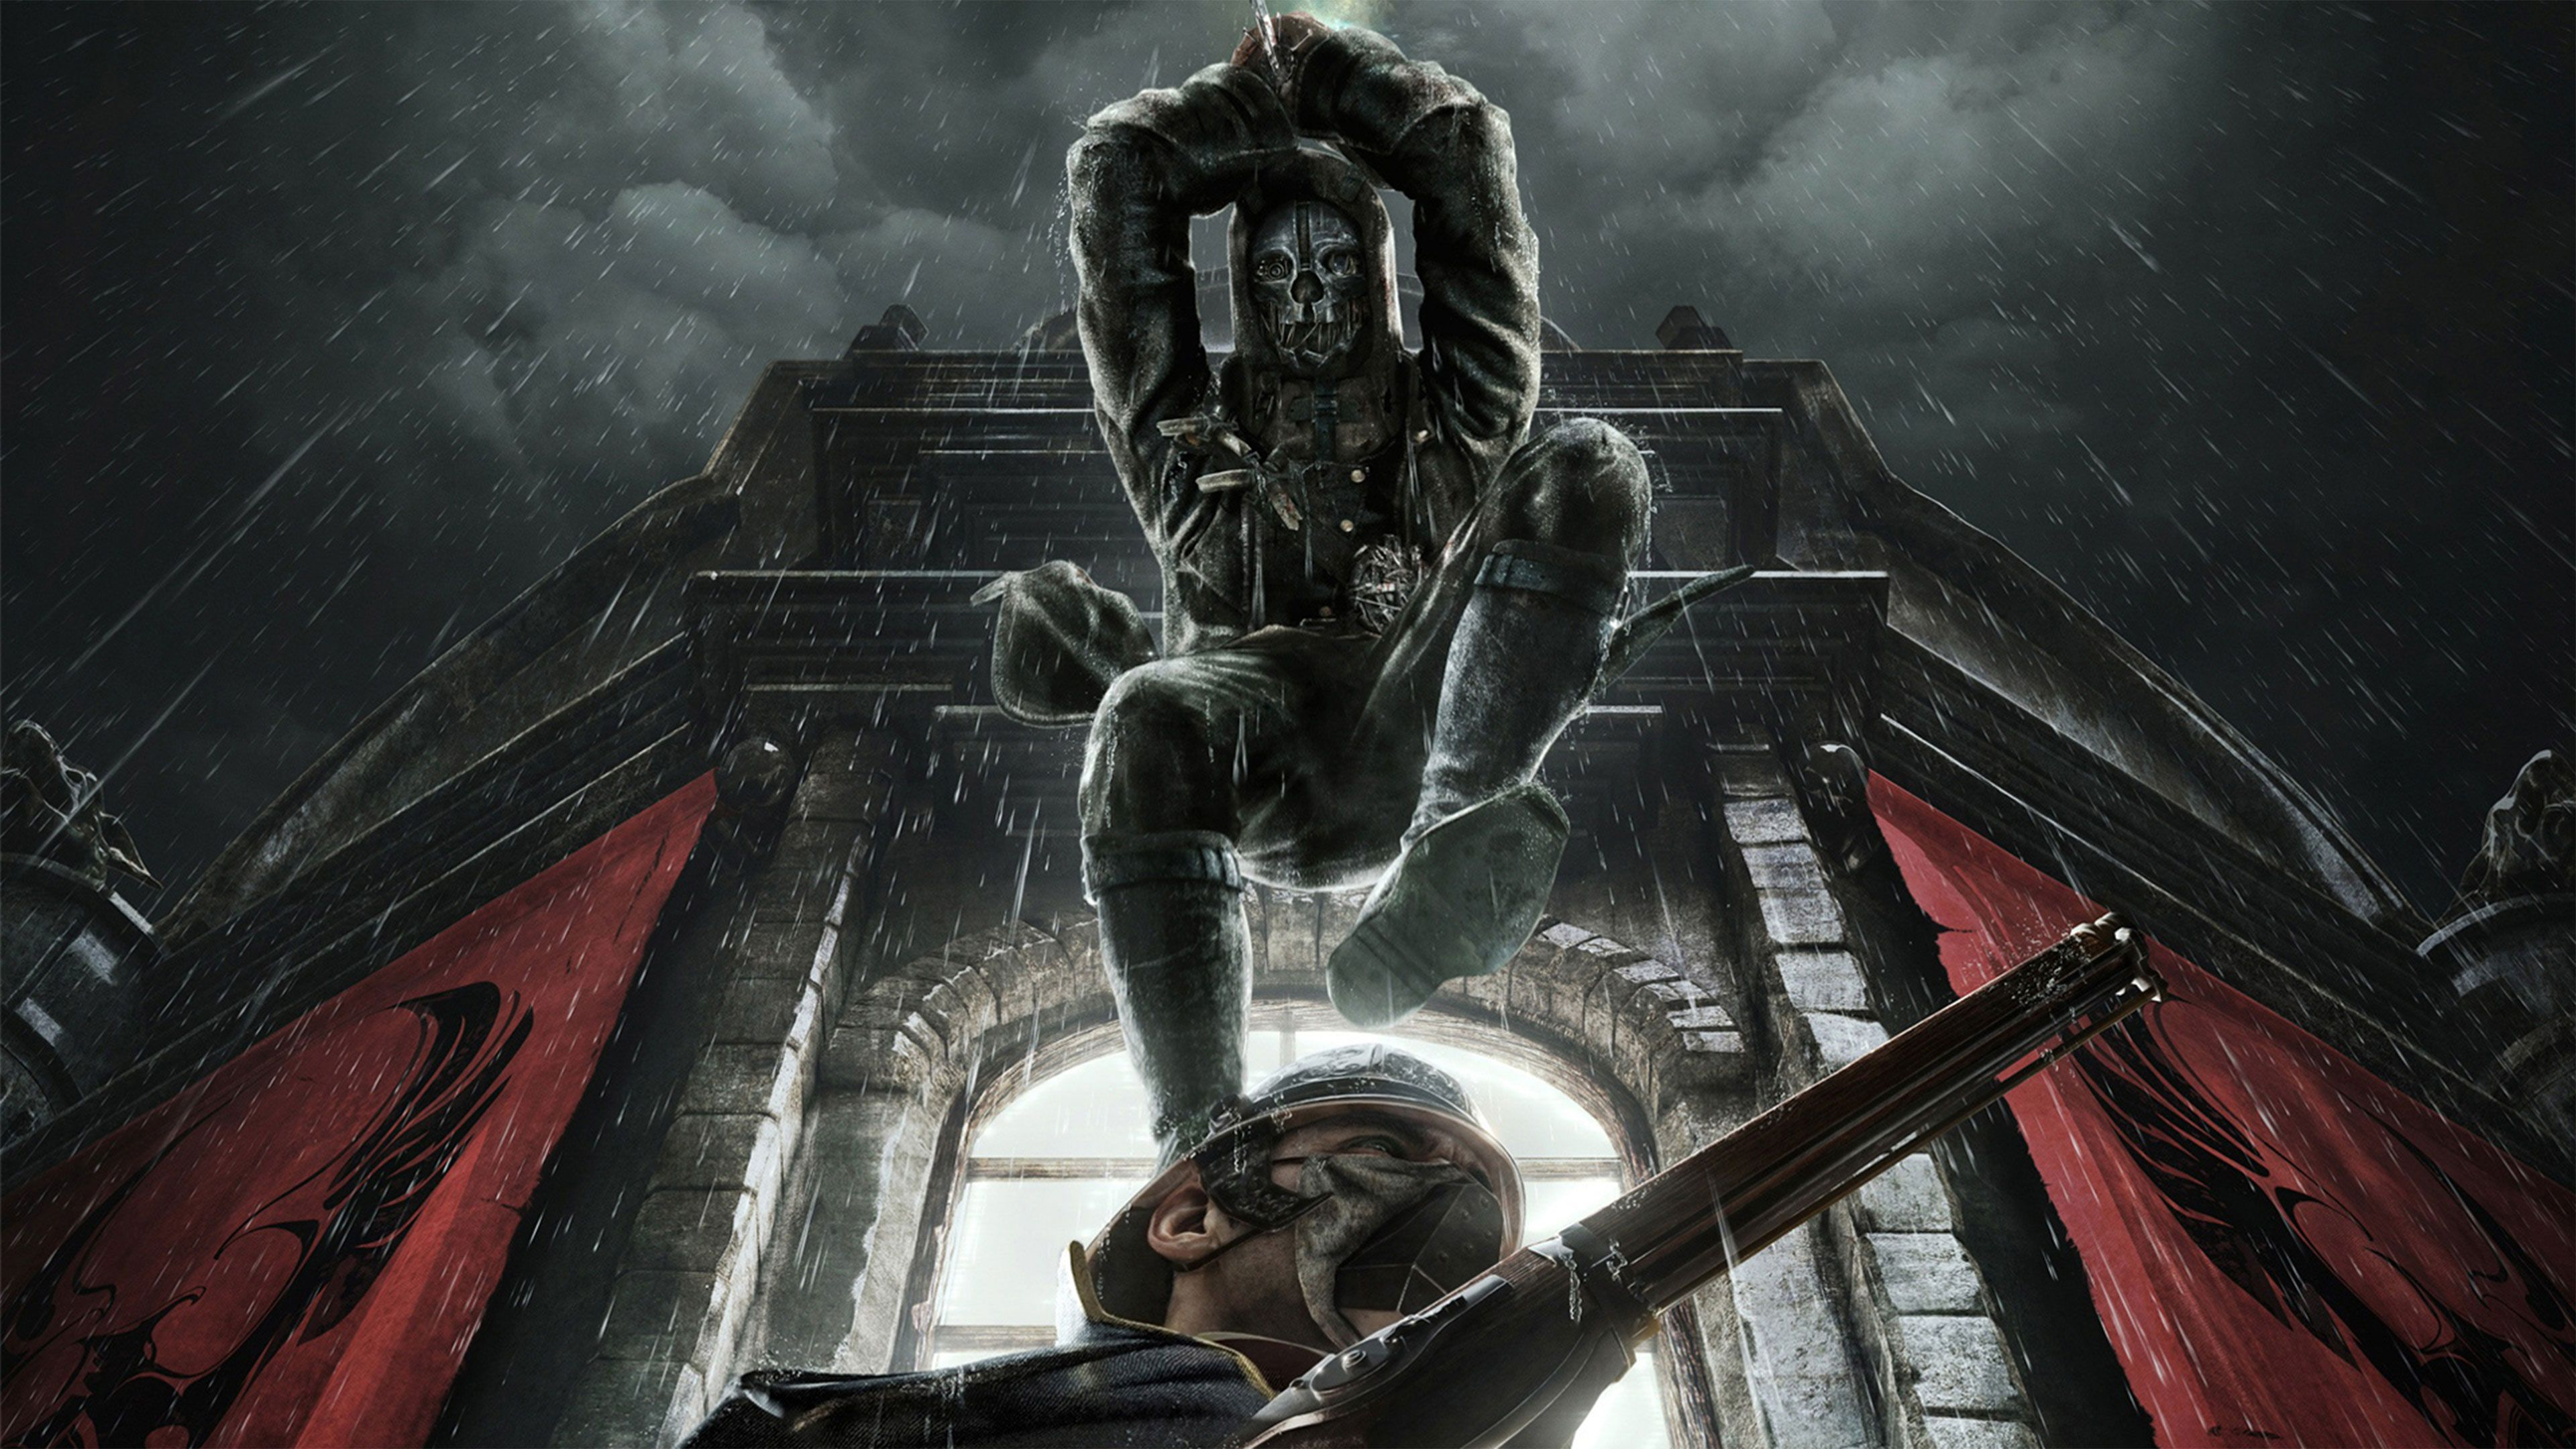 Dishonored Wallpapers Top Free Dishonored Backgrounds